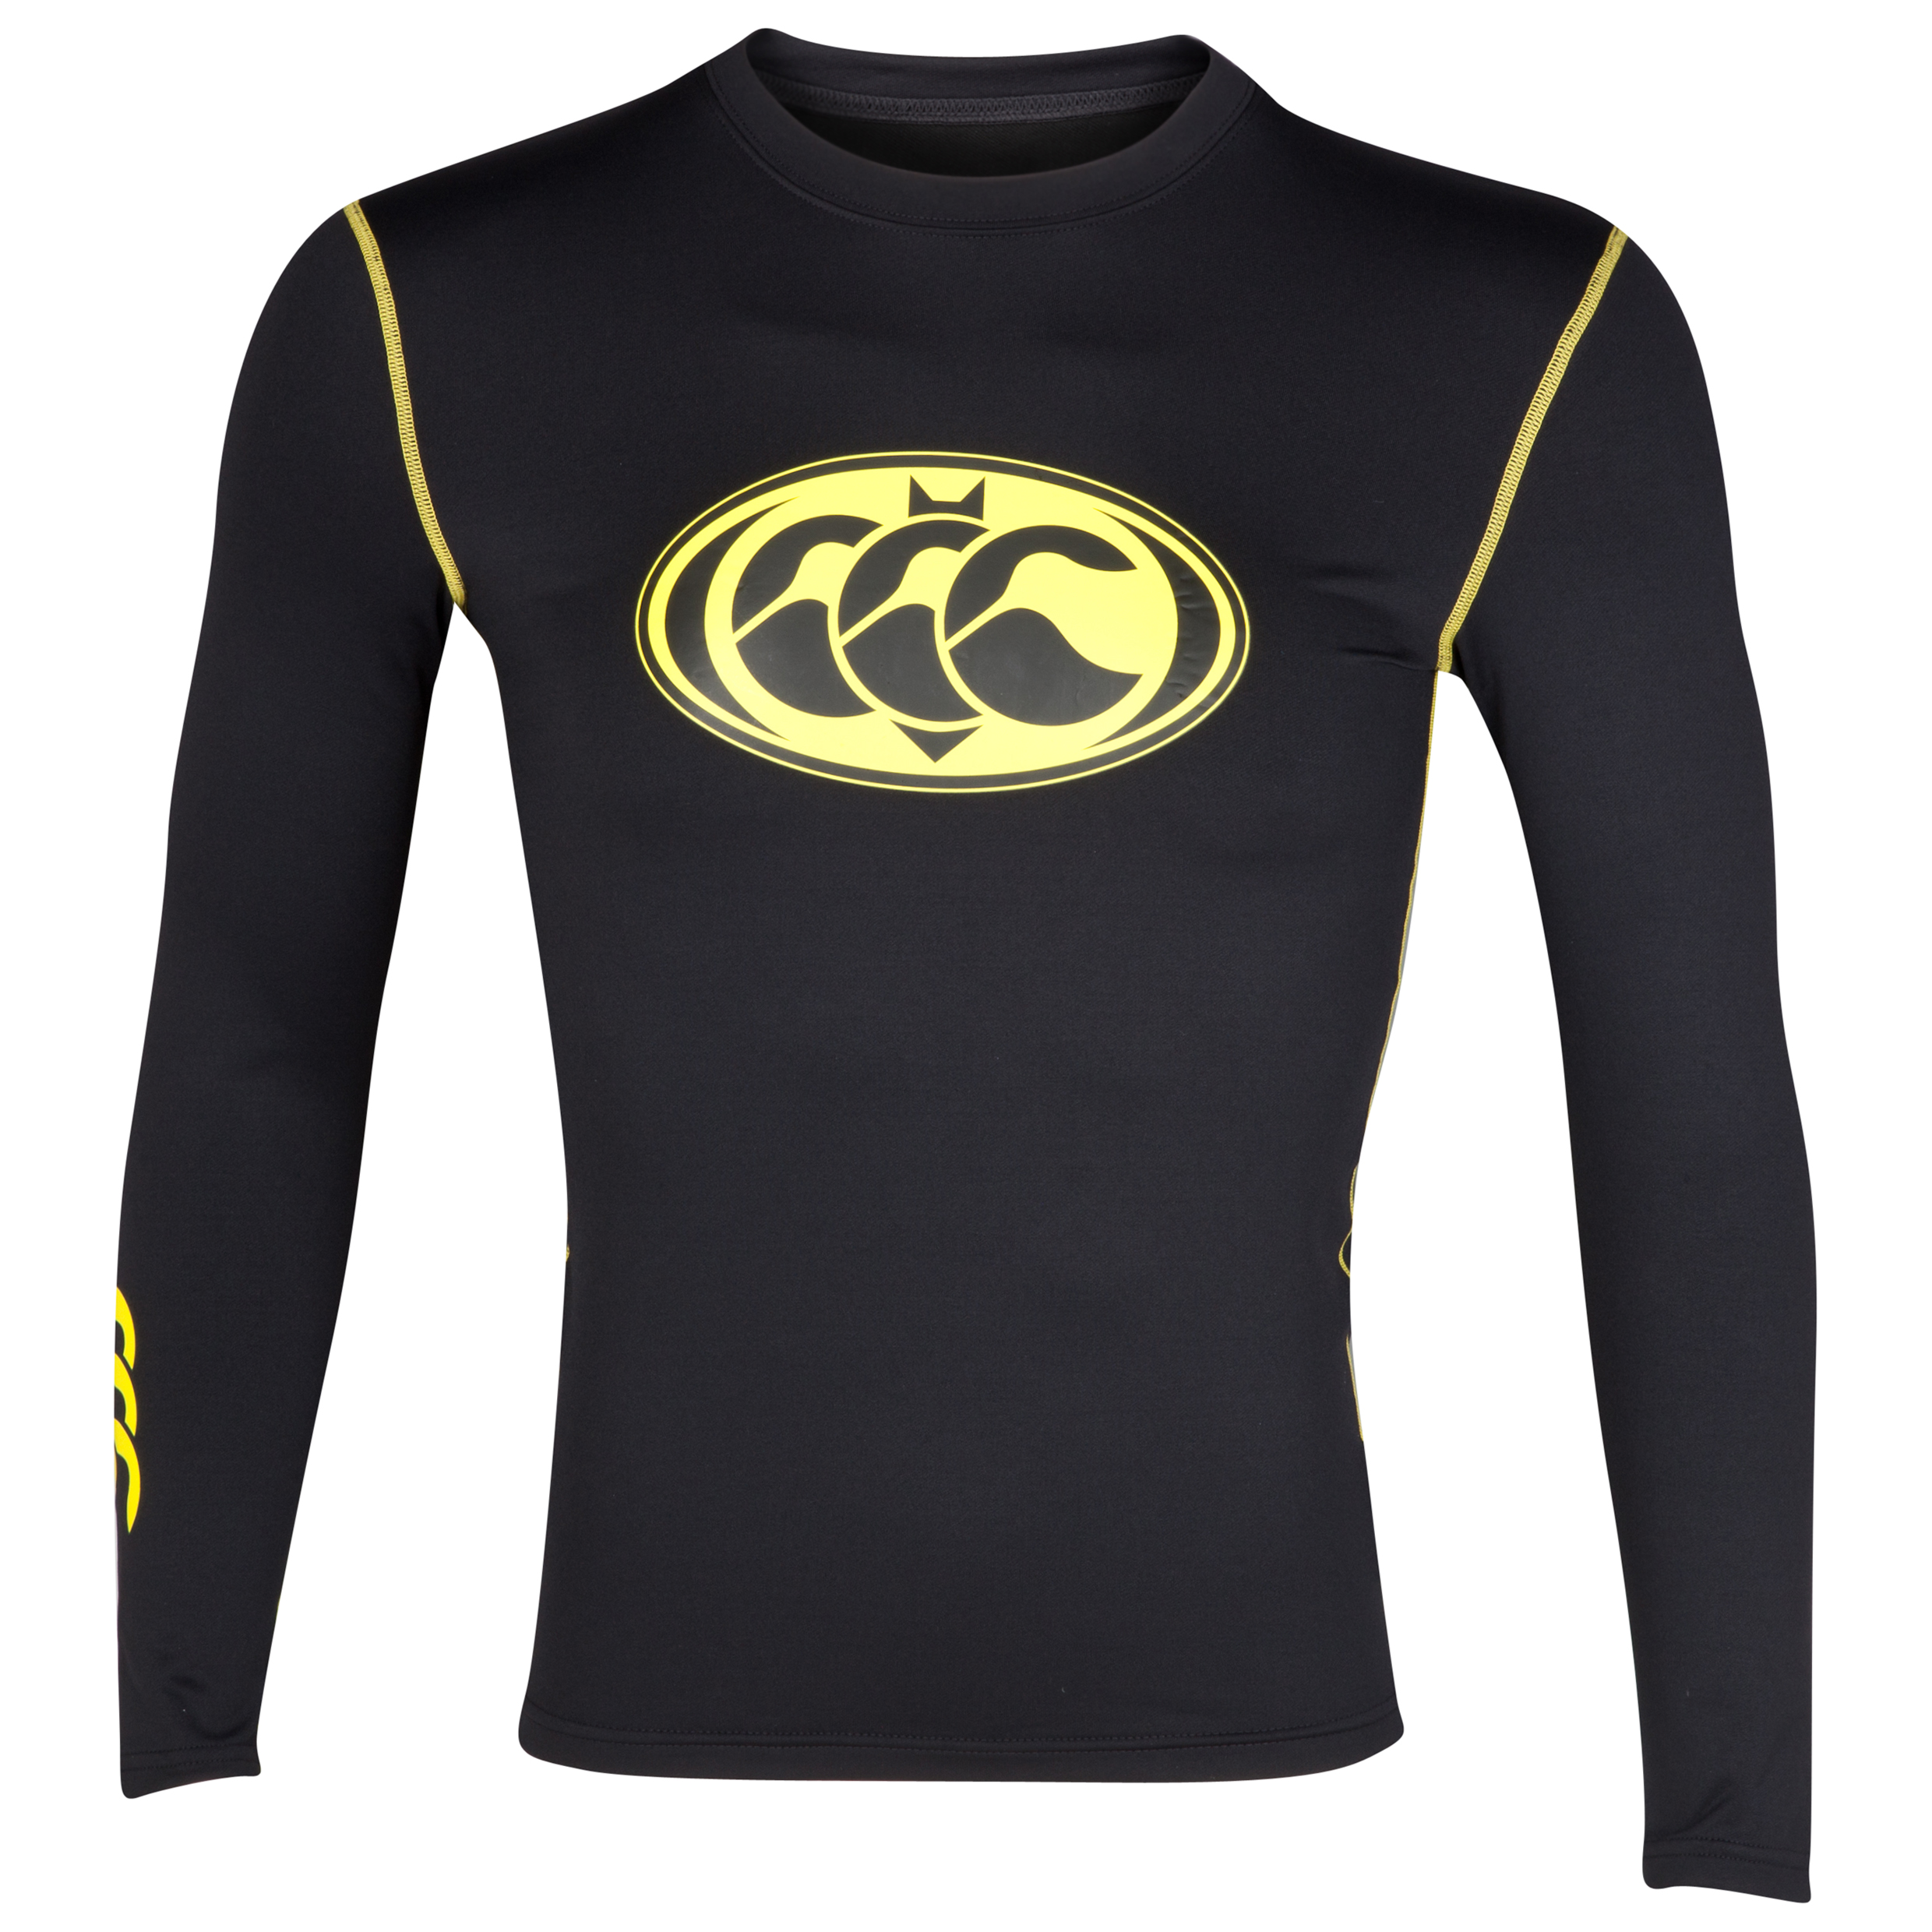 Canterbury Bat Cold Baselayer Top - Black - Long Sleeve - Kids